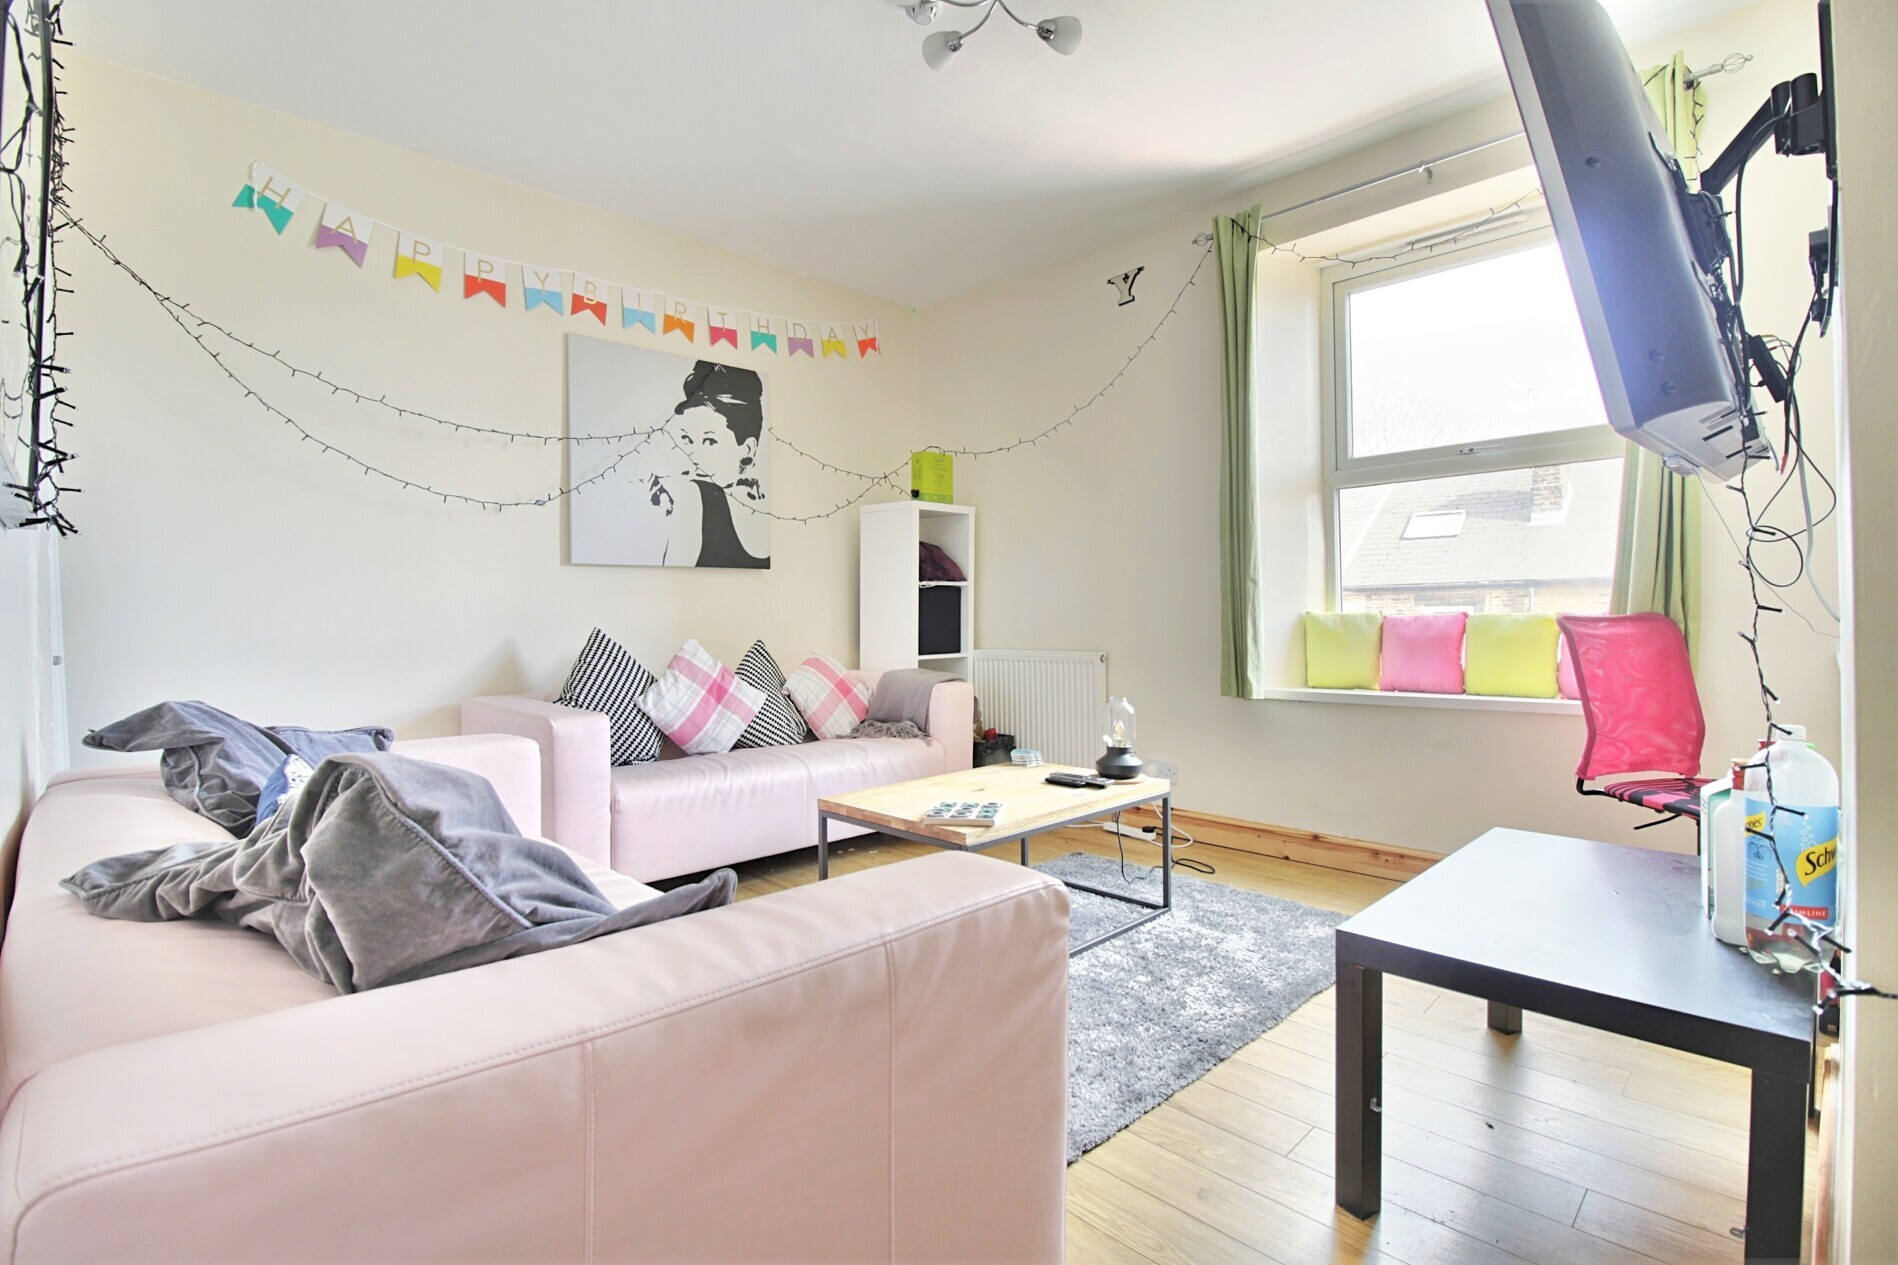 6 bedroom student apartment in Broomhill, Sheffield